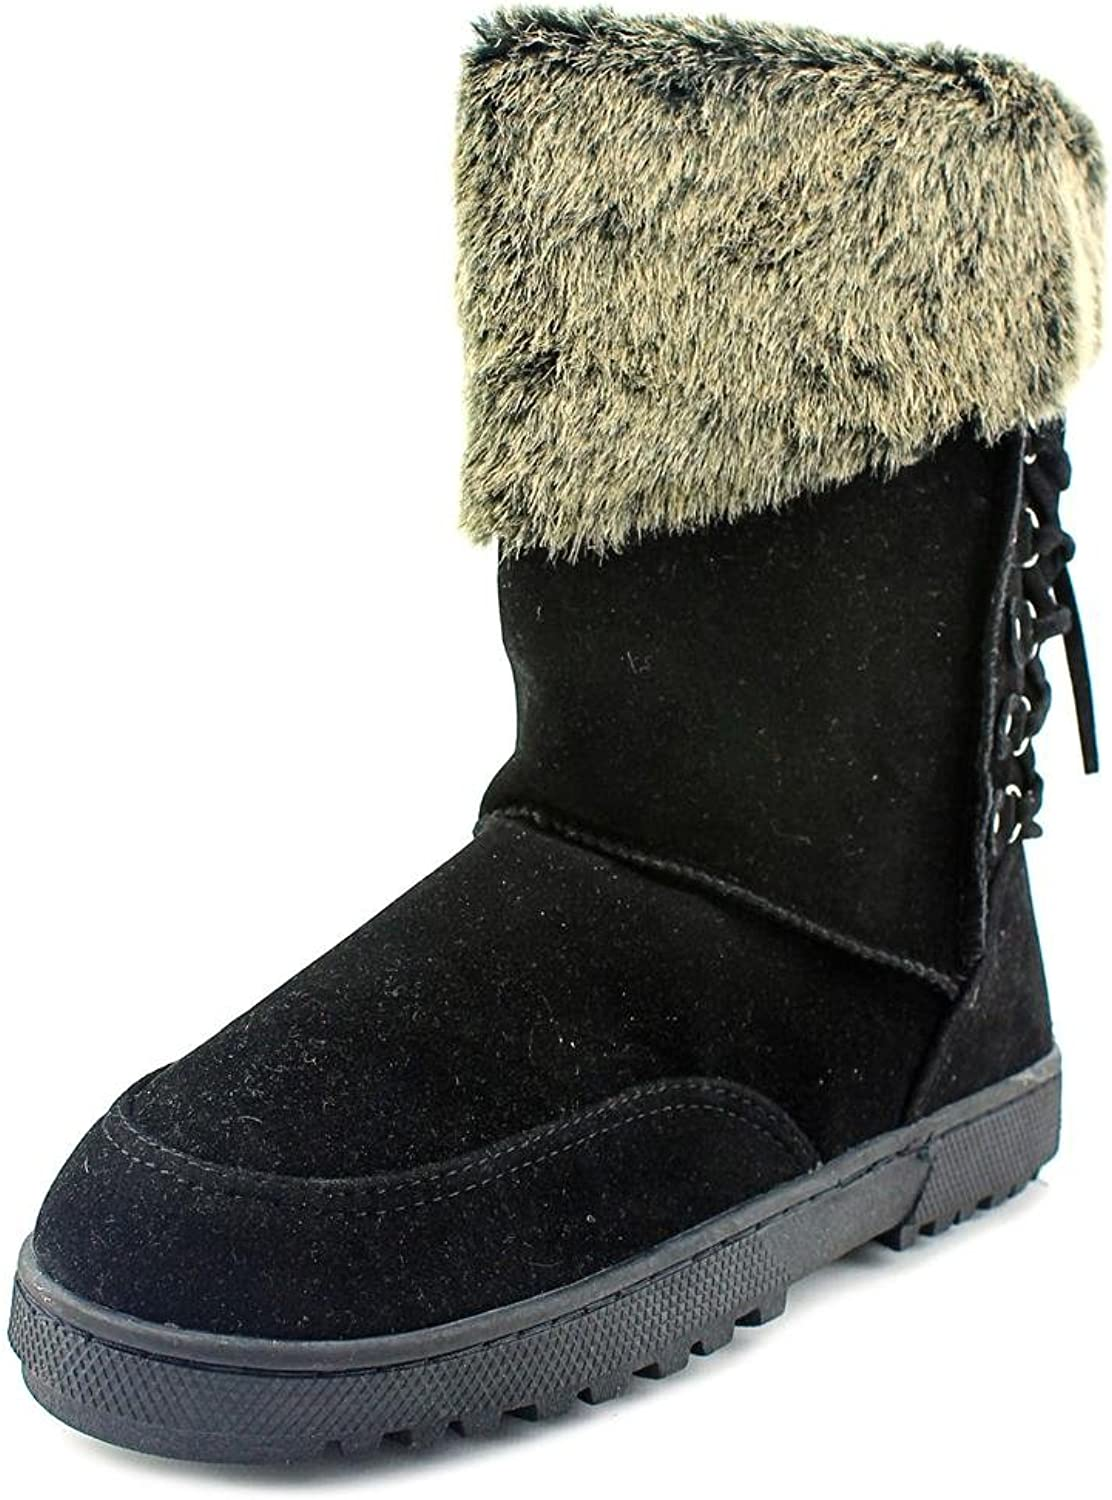 Rampage Womens Areya Faux Fur Closed Toe Mid-Calf Cold Weather, Black, Size 8.5